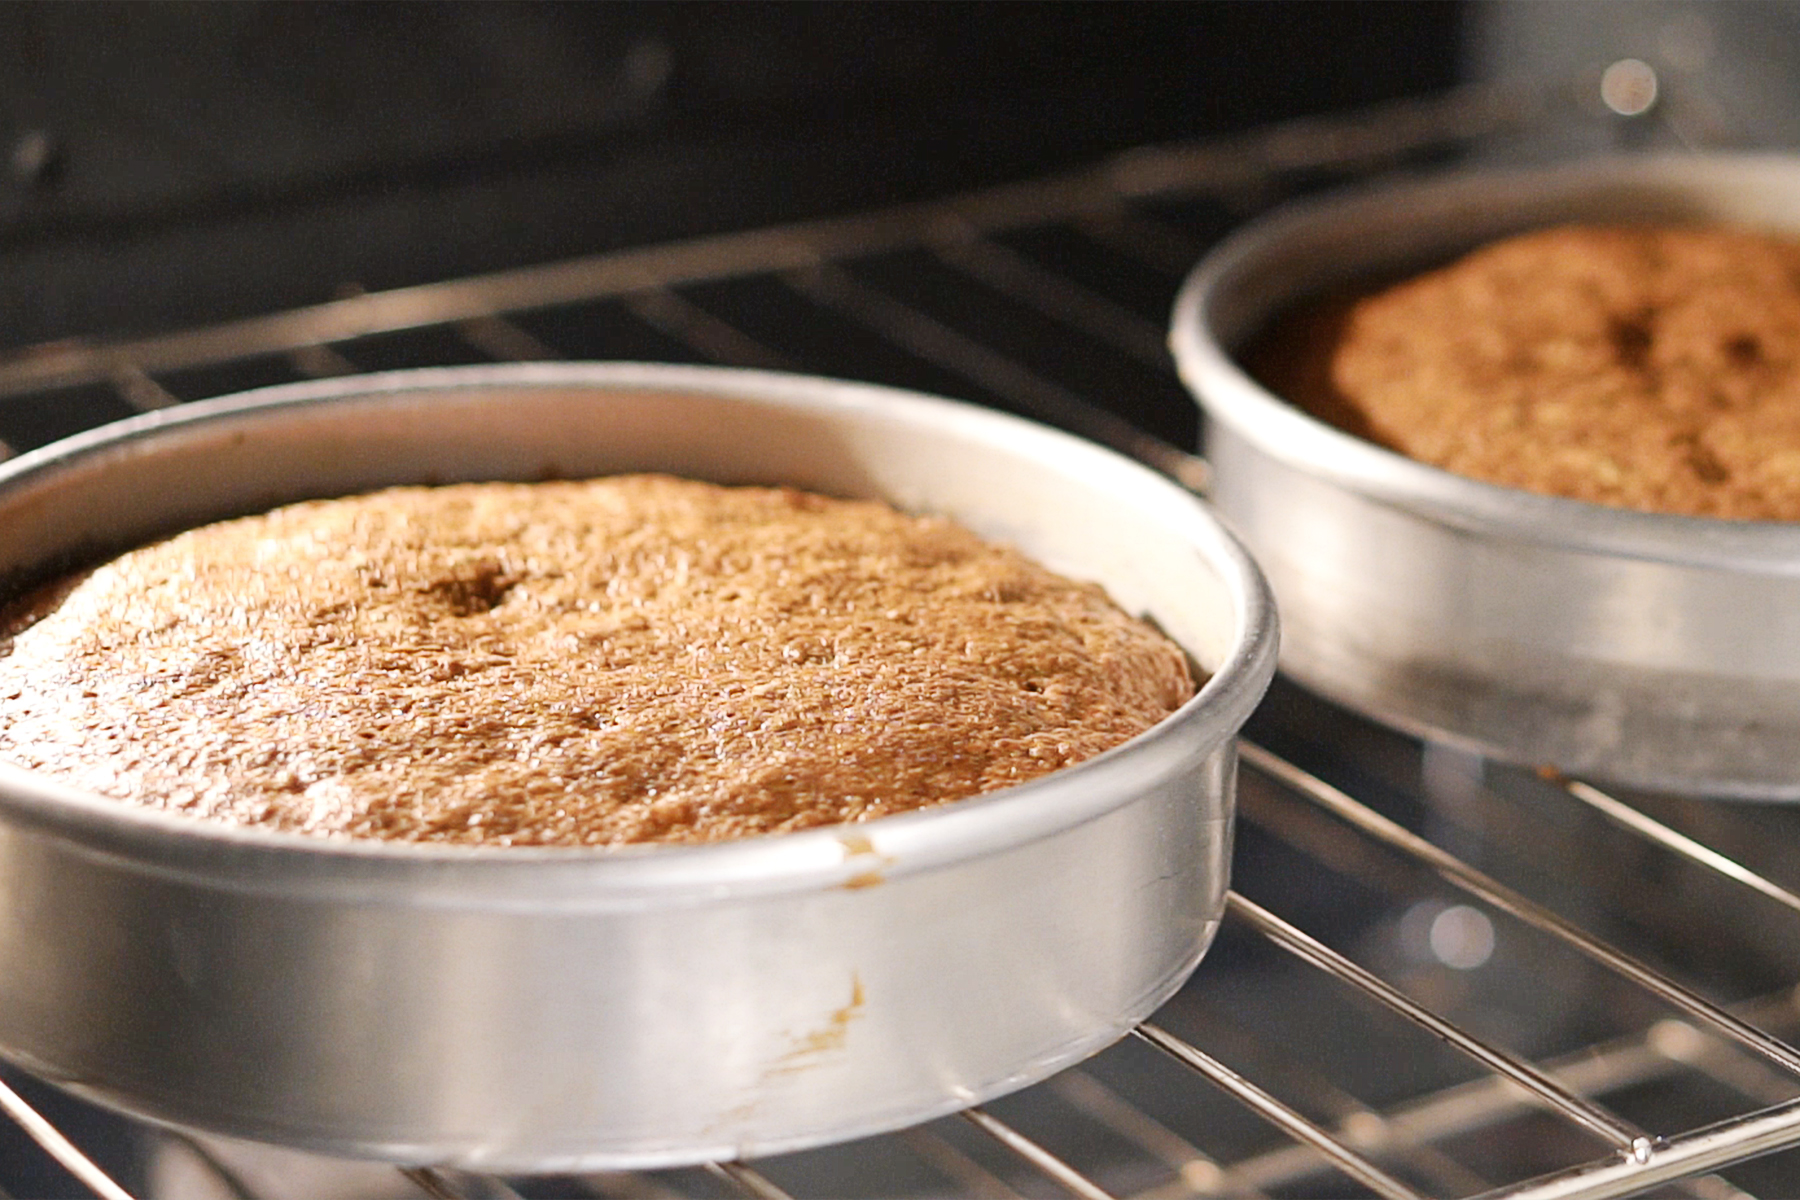 Two cakes baking in the oven